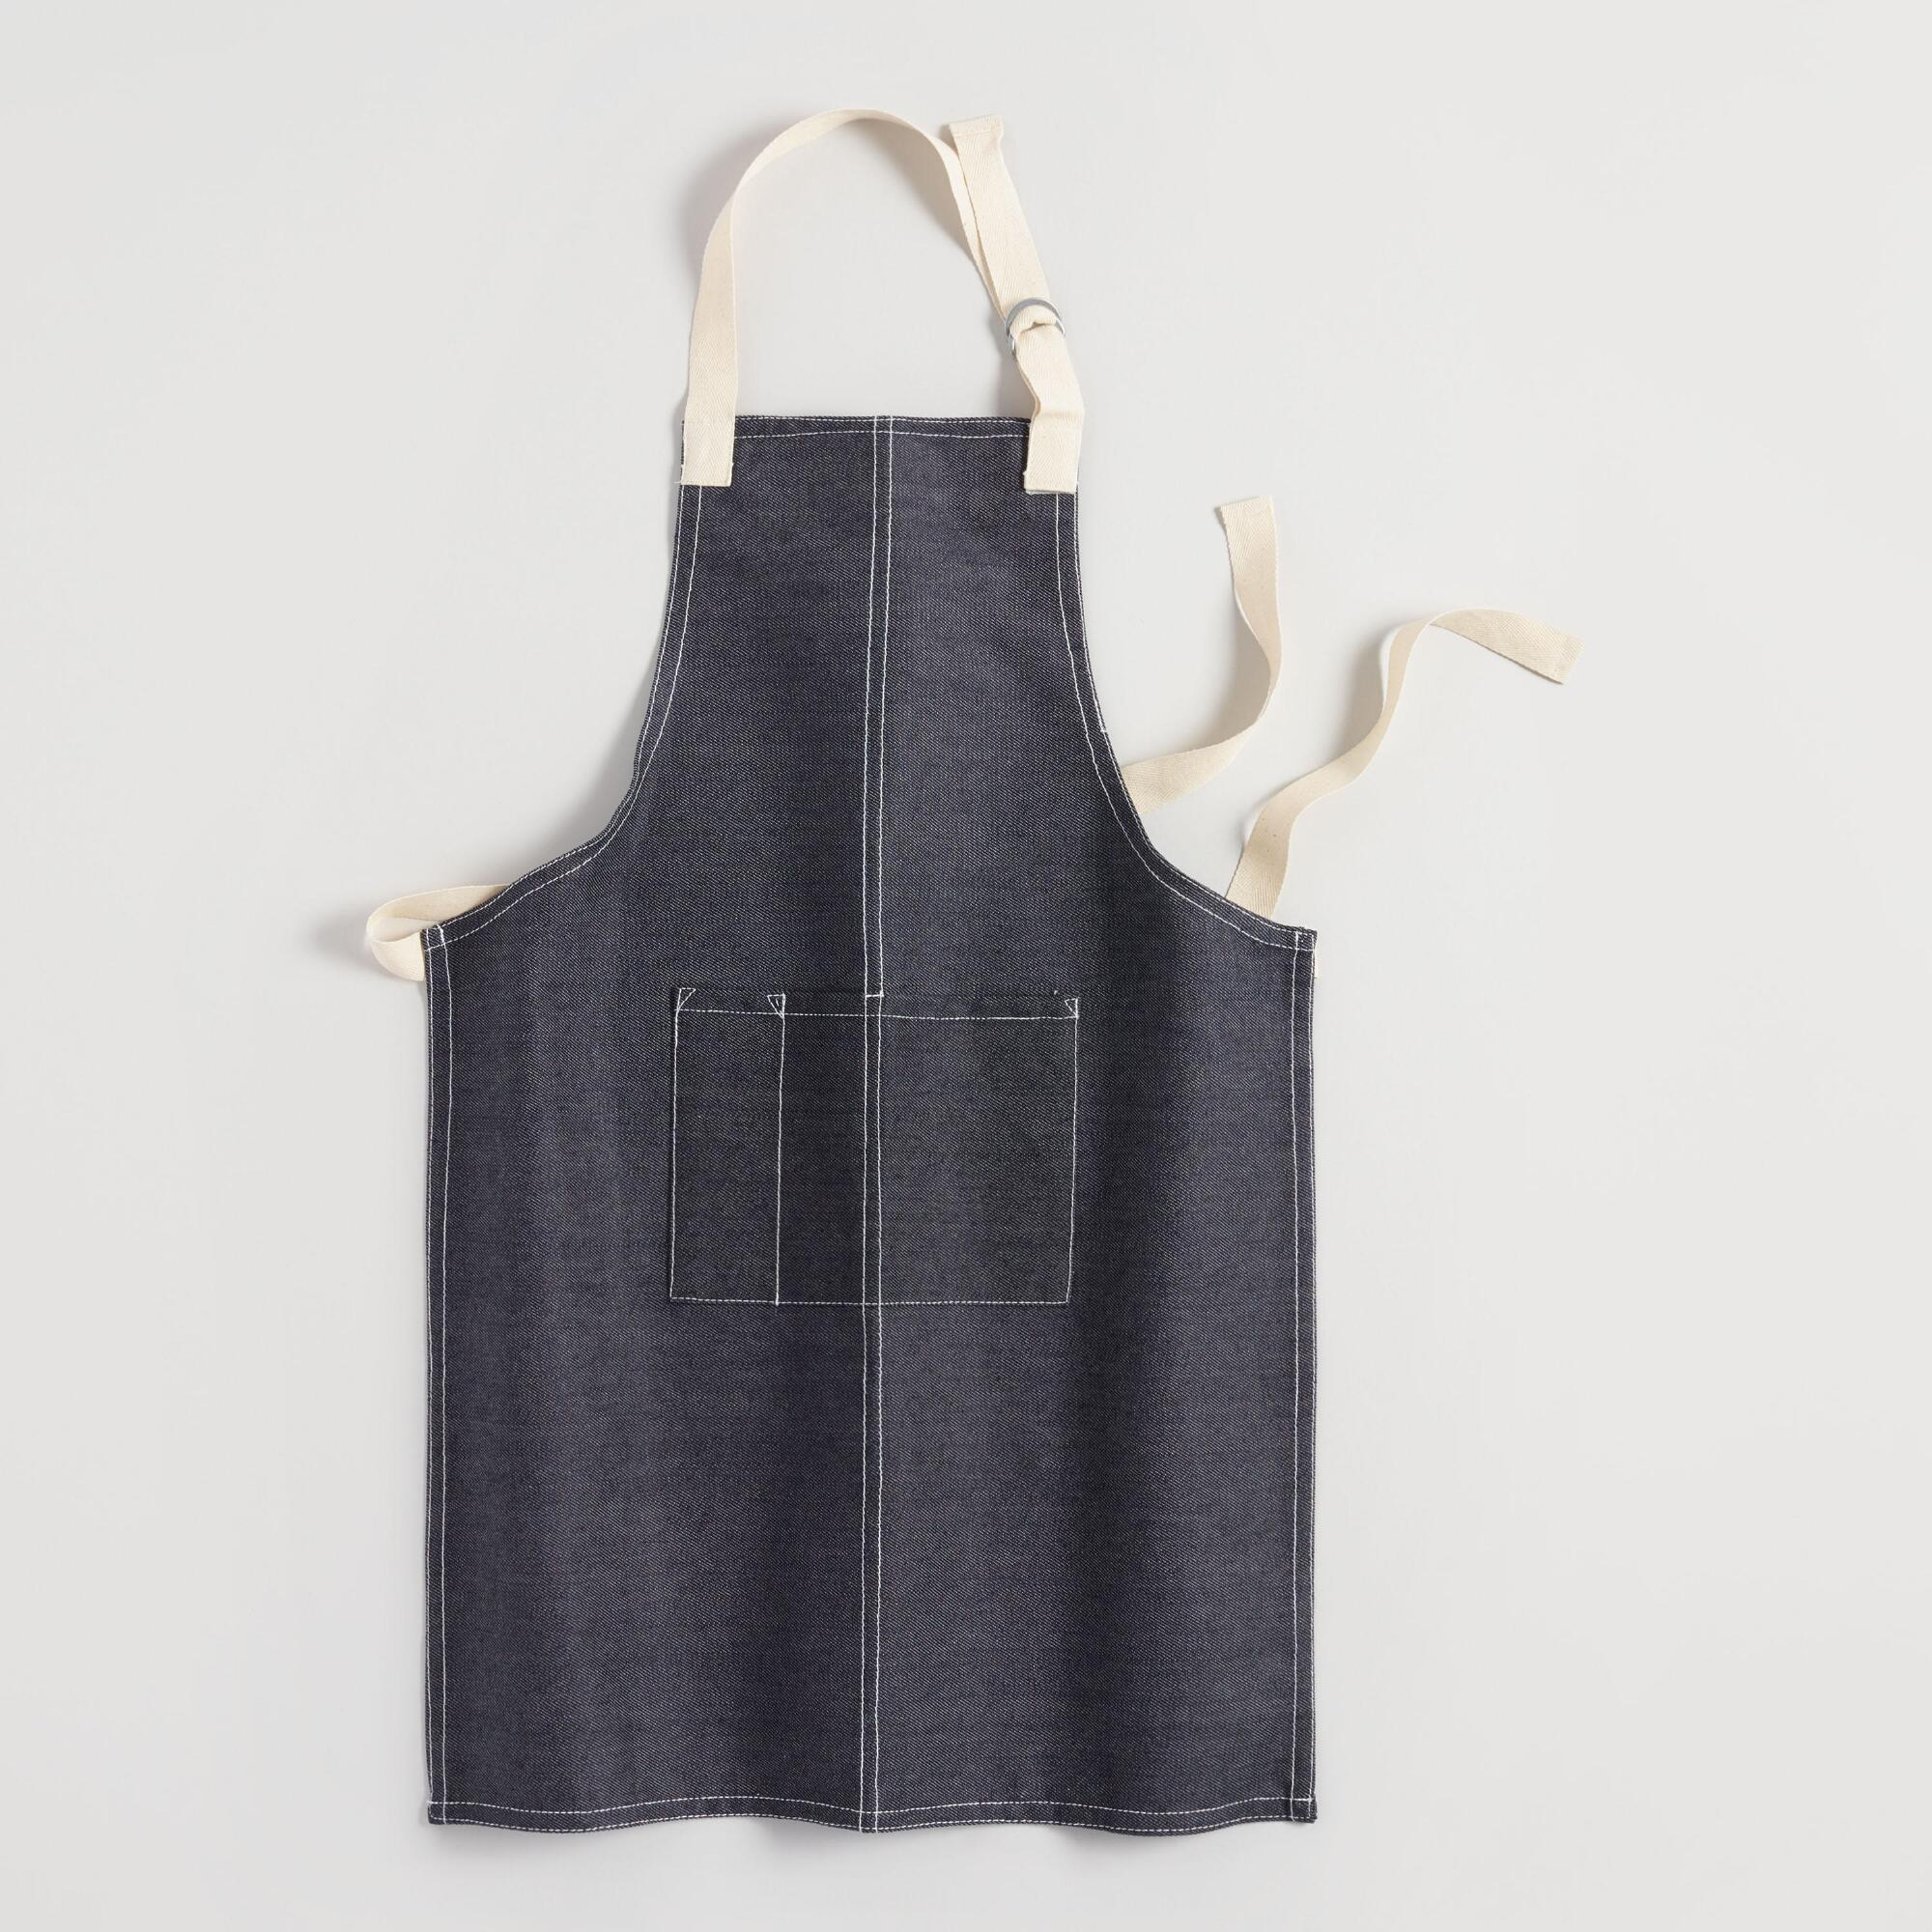 10 Things to Do with Vintage Aprons Kids Denim Apron Blue - Cotton by World Market $14.99 AT vintagedancer.com